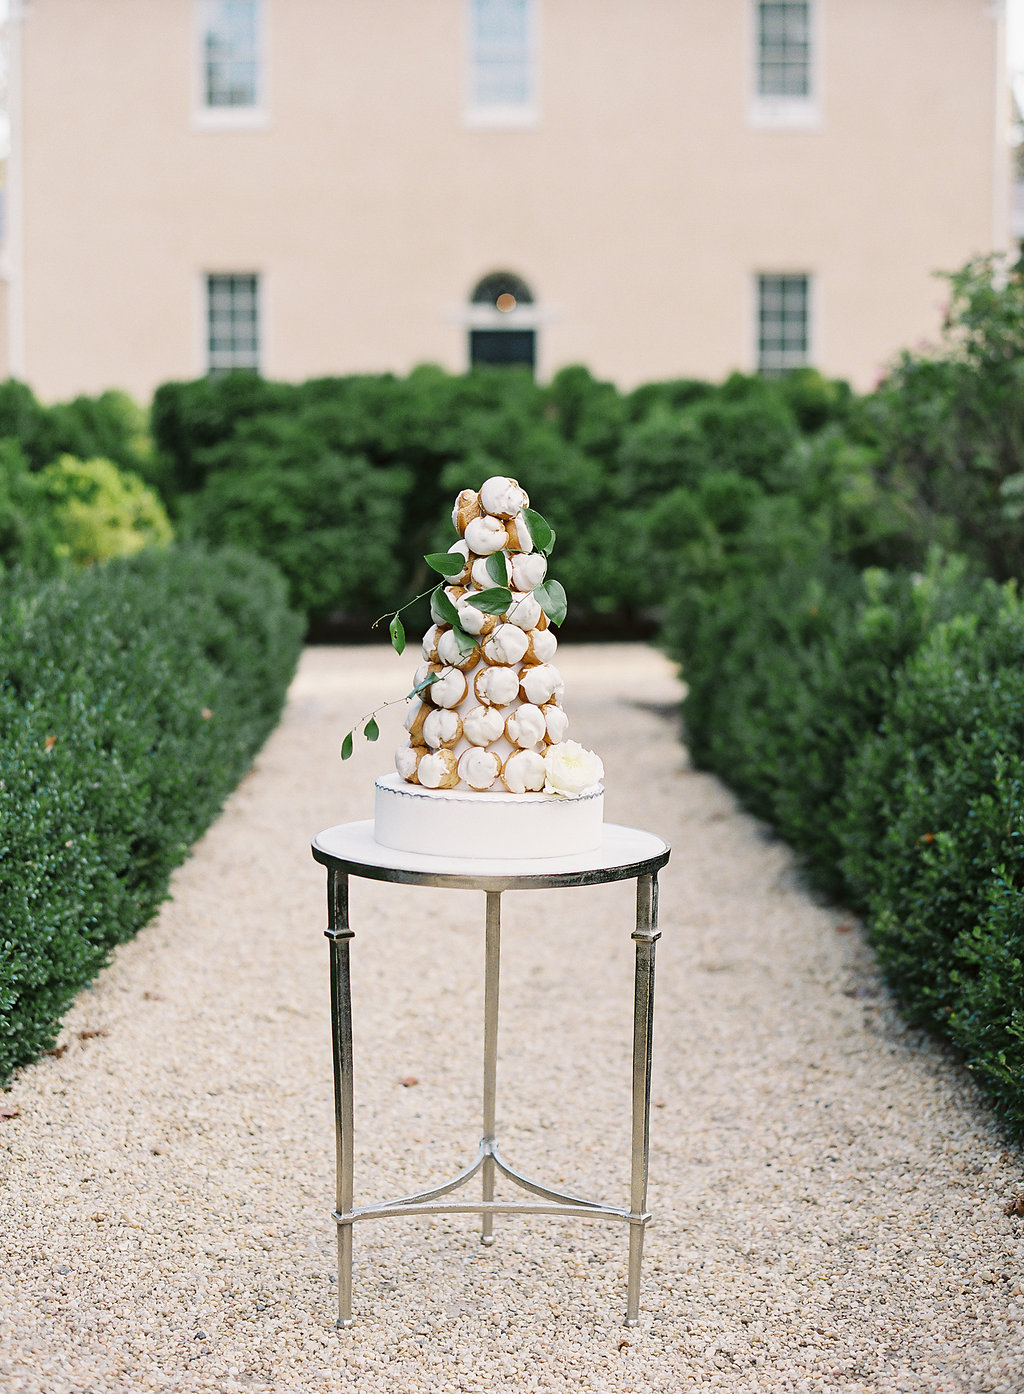 French Inspired Fall Wedding with Fine Art Destination Wedding Planner East Made Event Company and DC Film Photographer Vicki Grafton Photography at Tudor Place in Washington DC-144.jpg